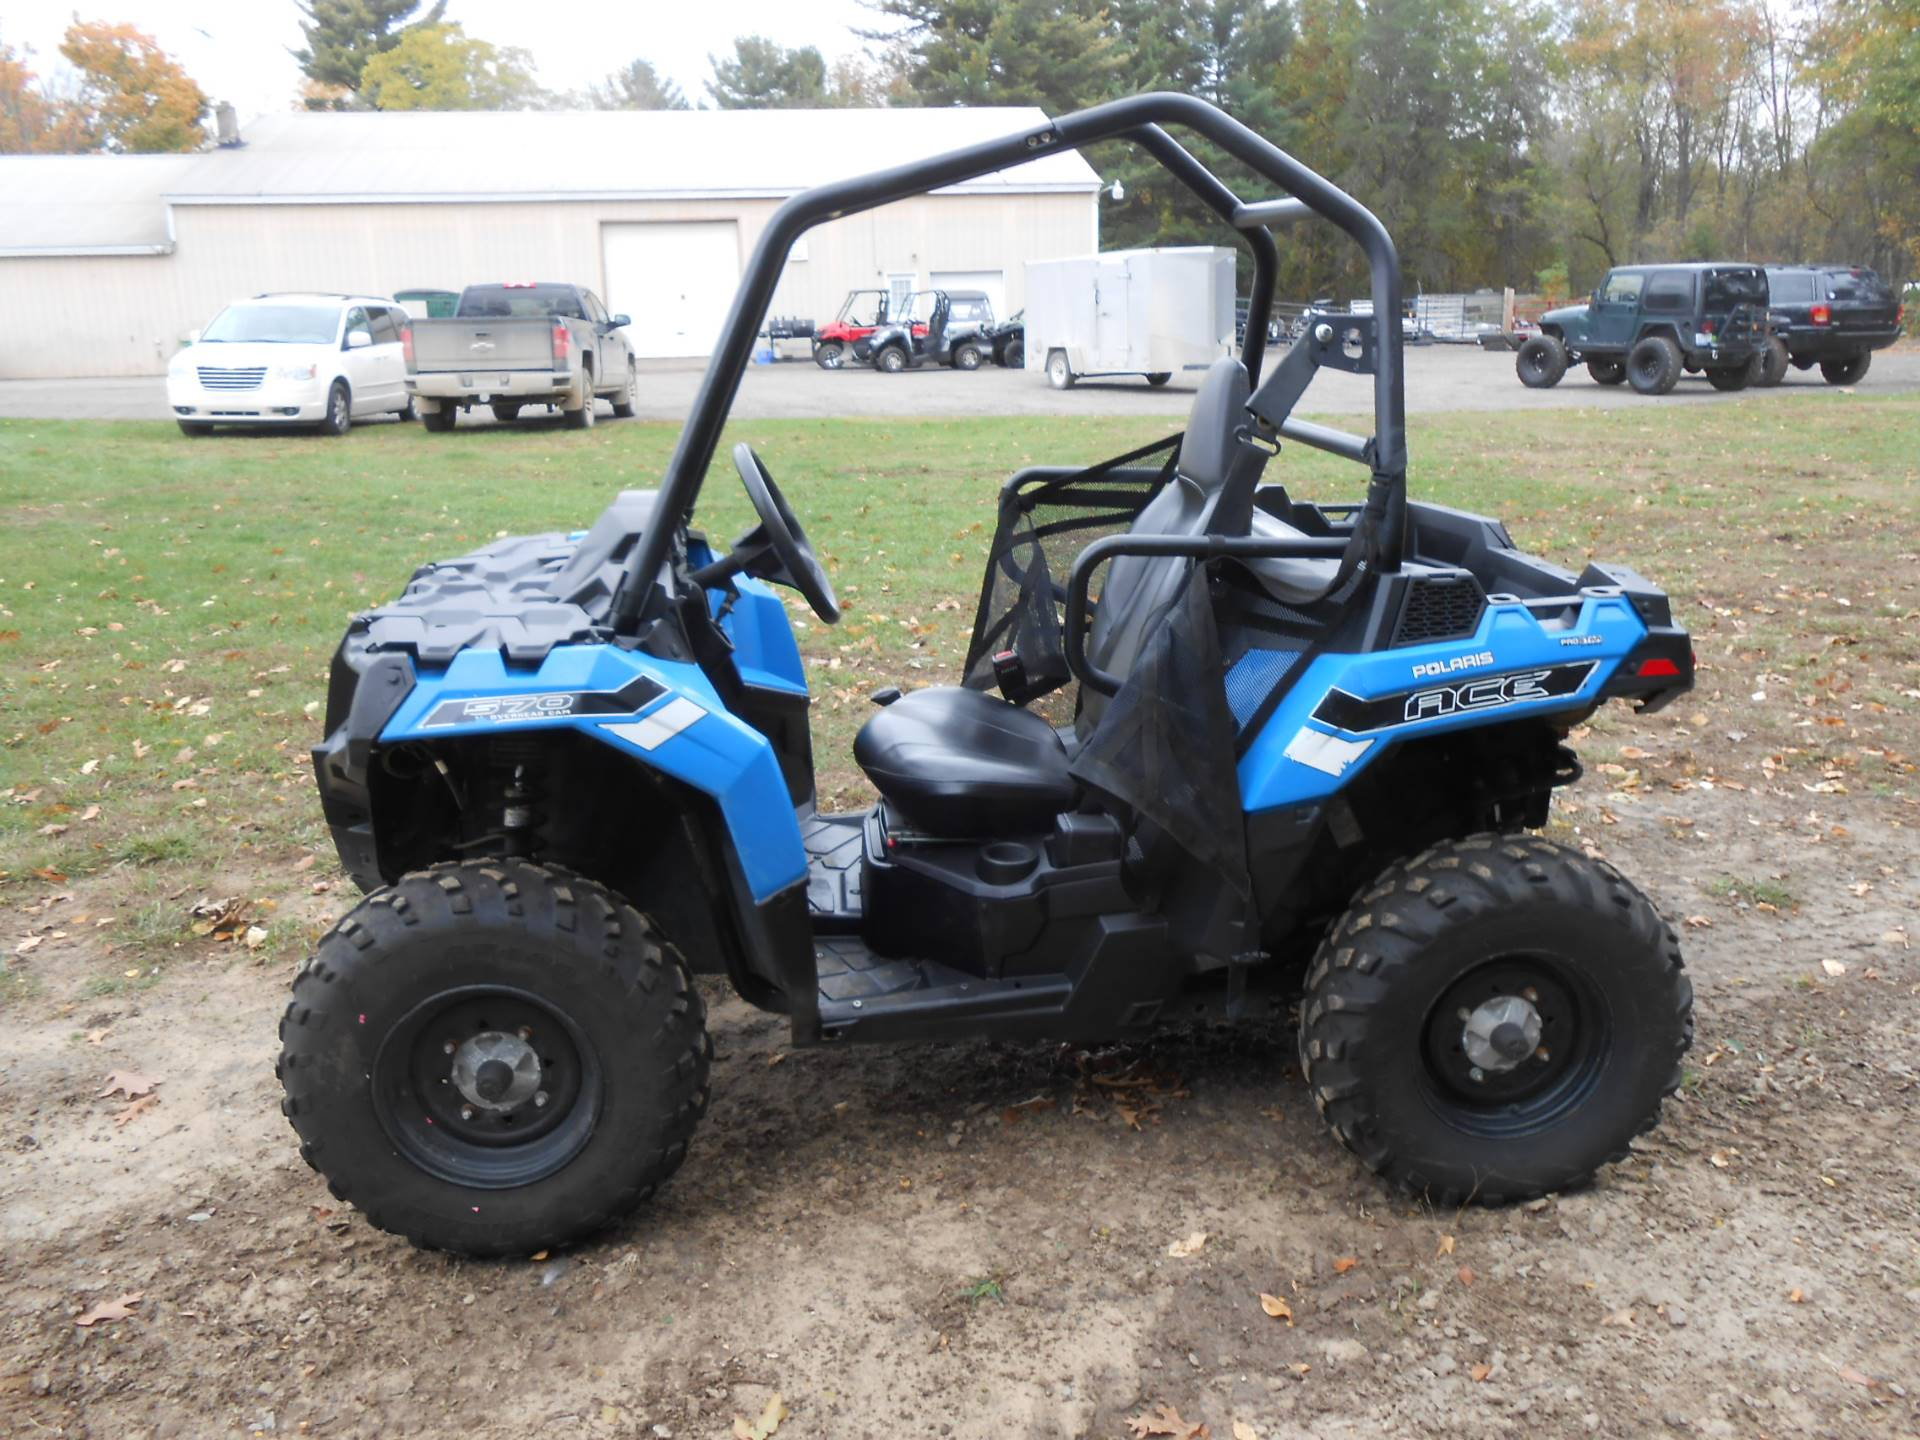 2017 Polaris Ace 570 in Howell, Michigan